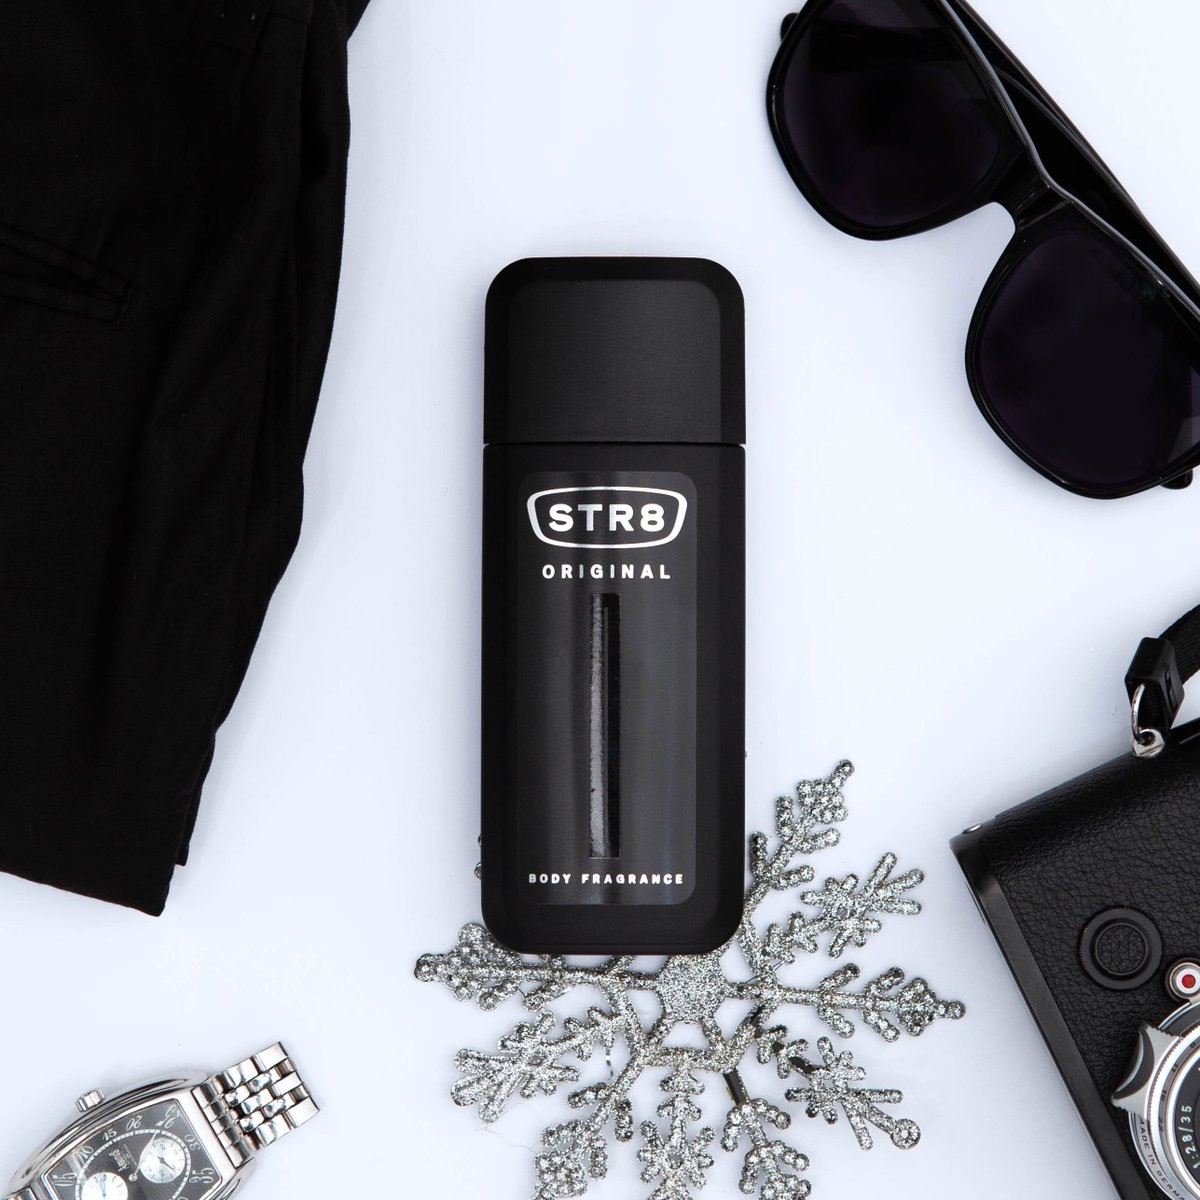 STR8 Original Body Spray will give you that extra touch of elegance and confidence for this season&#39;s merry making with your friends and family.   #GoforGreat #STR8Philippines<br>http://pic.twitter.com/b2C96aQmLS